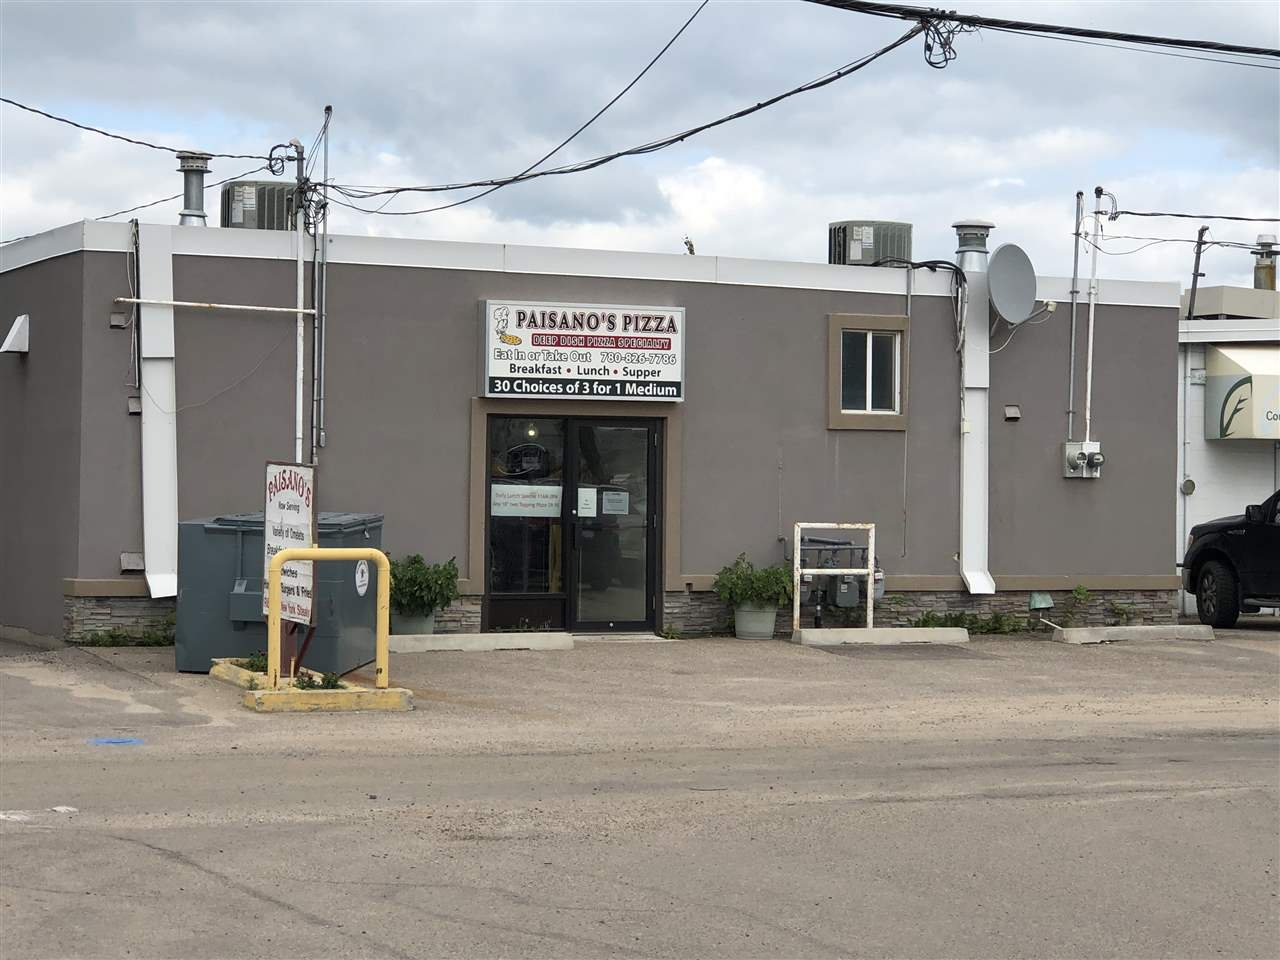 Main Photo: 5012 50 Avenue in Bonnyville Town: Bonnyville Business for sale : MLS®# E4174290